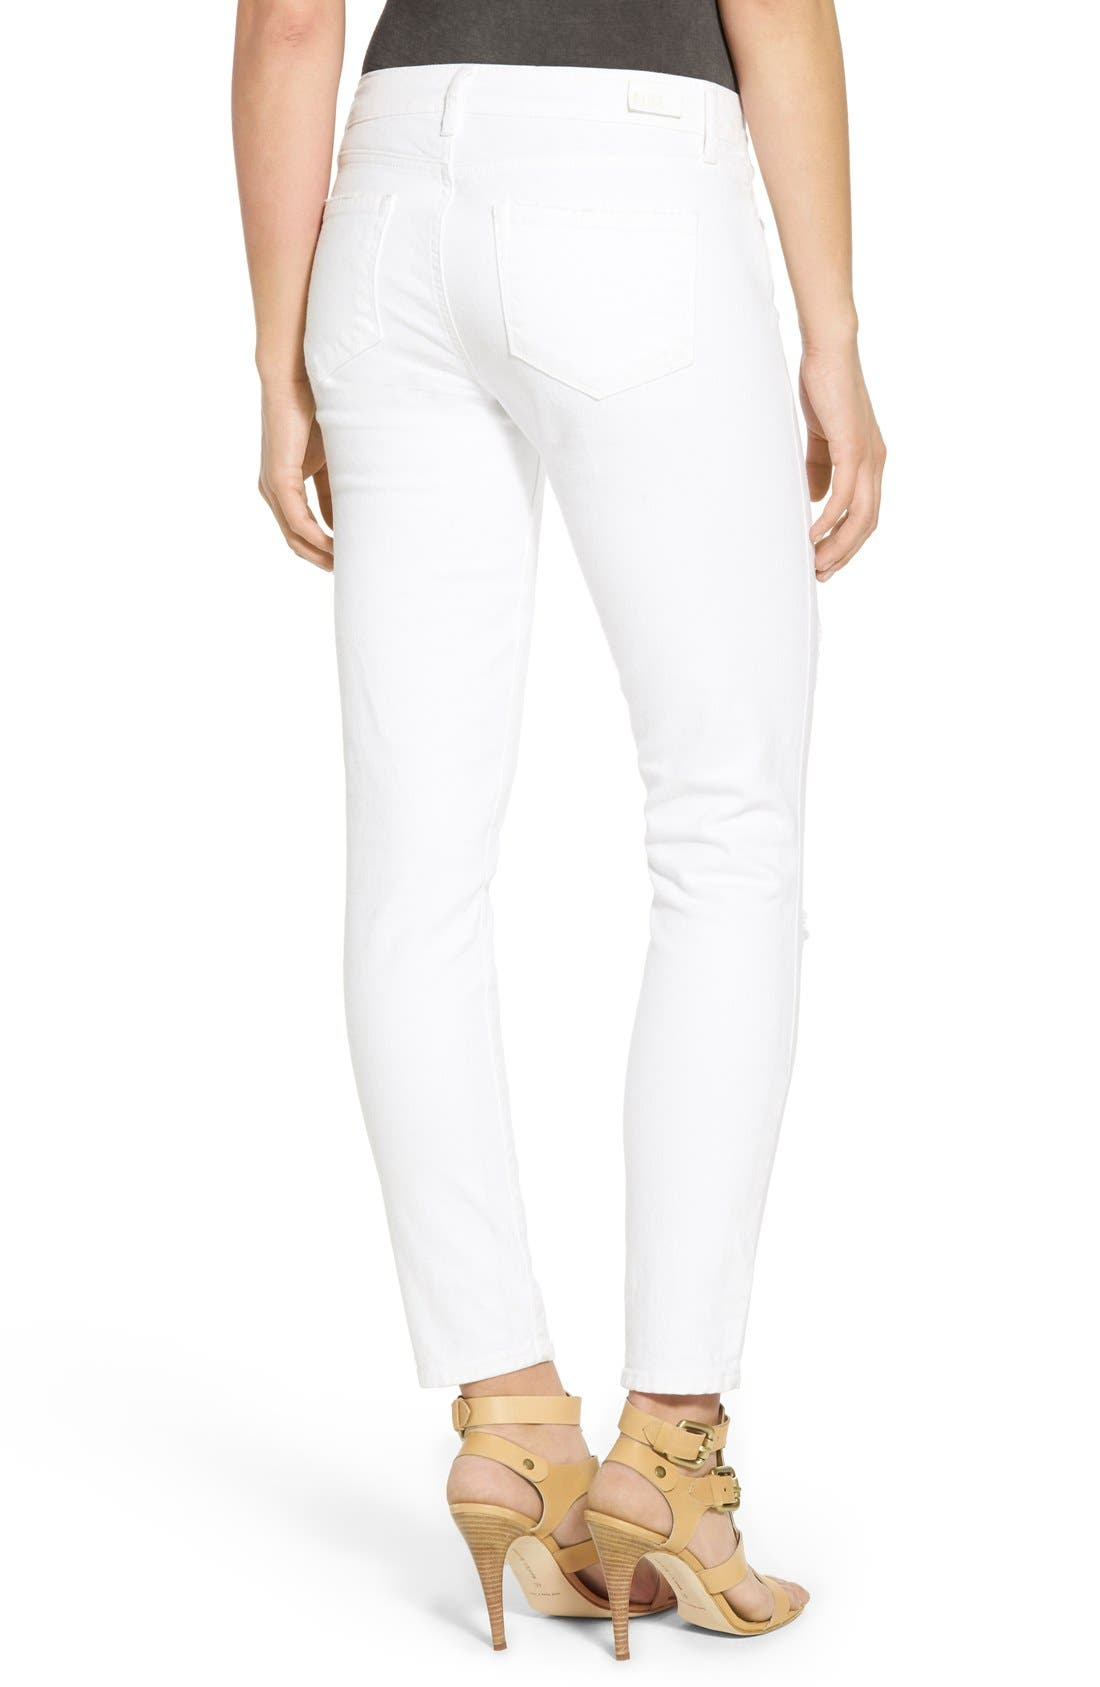 Alternate Image 2  - PAIGE 'Verdugo' Ankle Skinny Jeans (Arctic White Destructed)